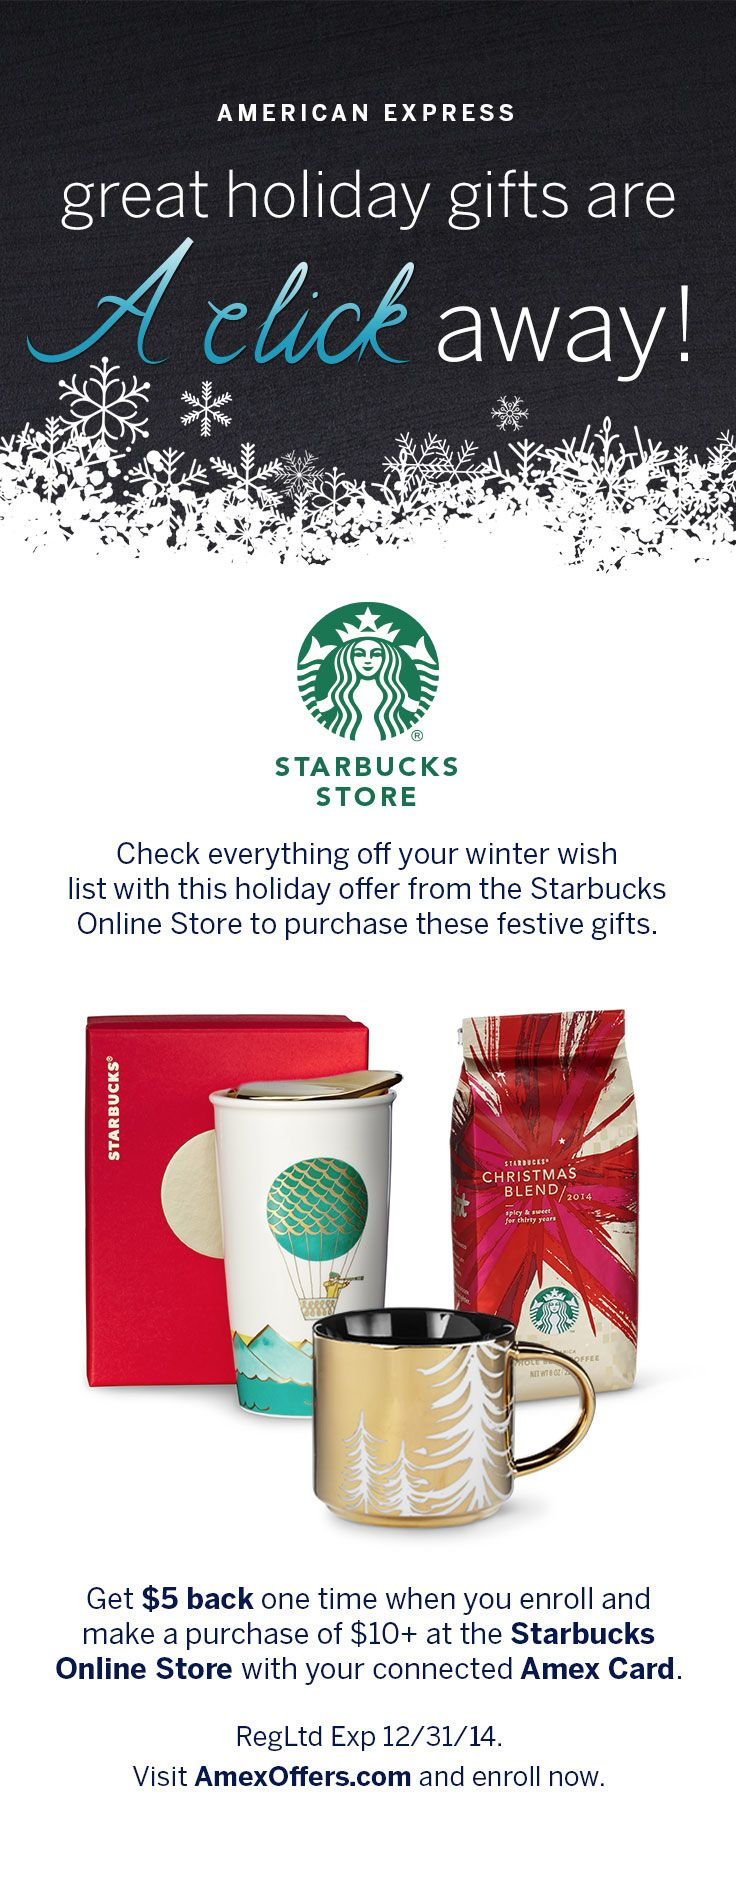 Check everything off your winter holiday wish list with these festive gifts and holiday offer from the Starbucks Online Store. Learn more at AmexOffers.com